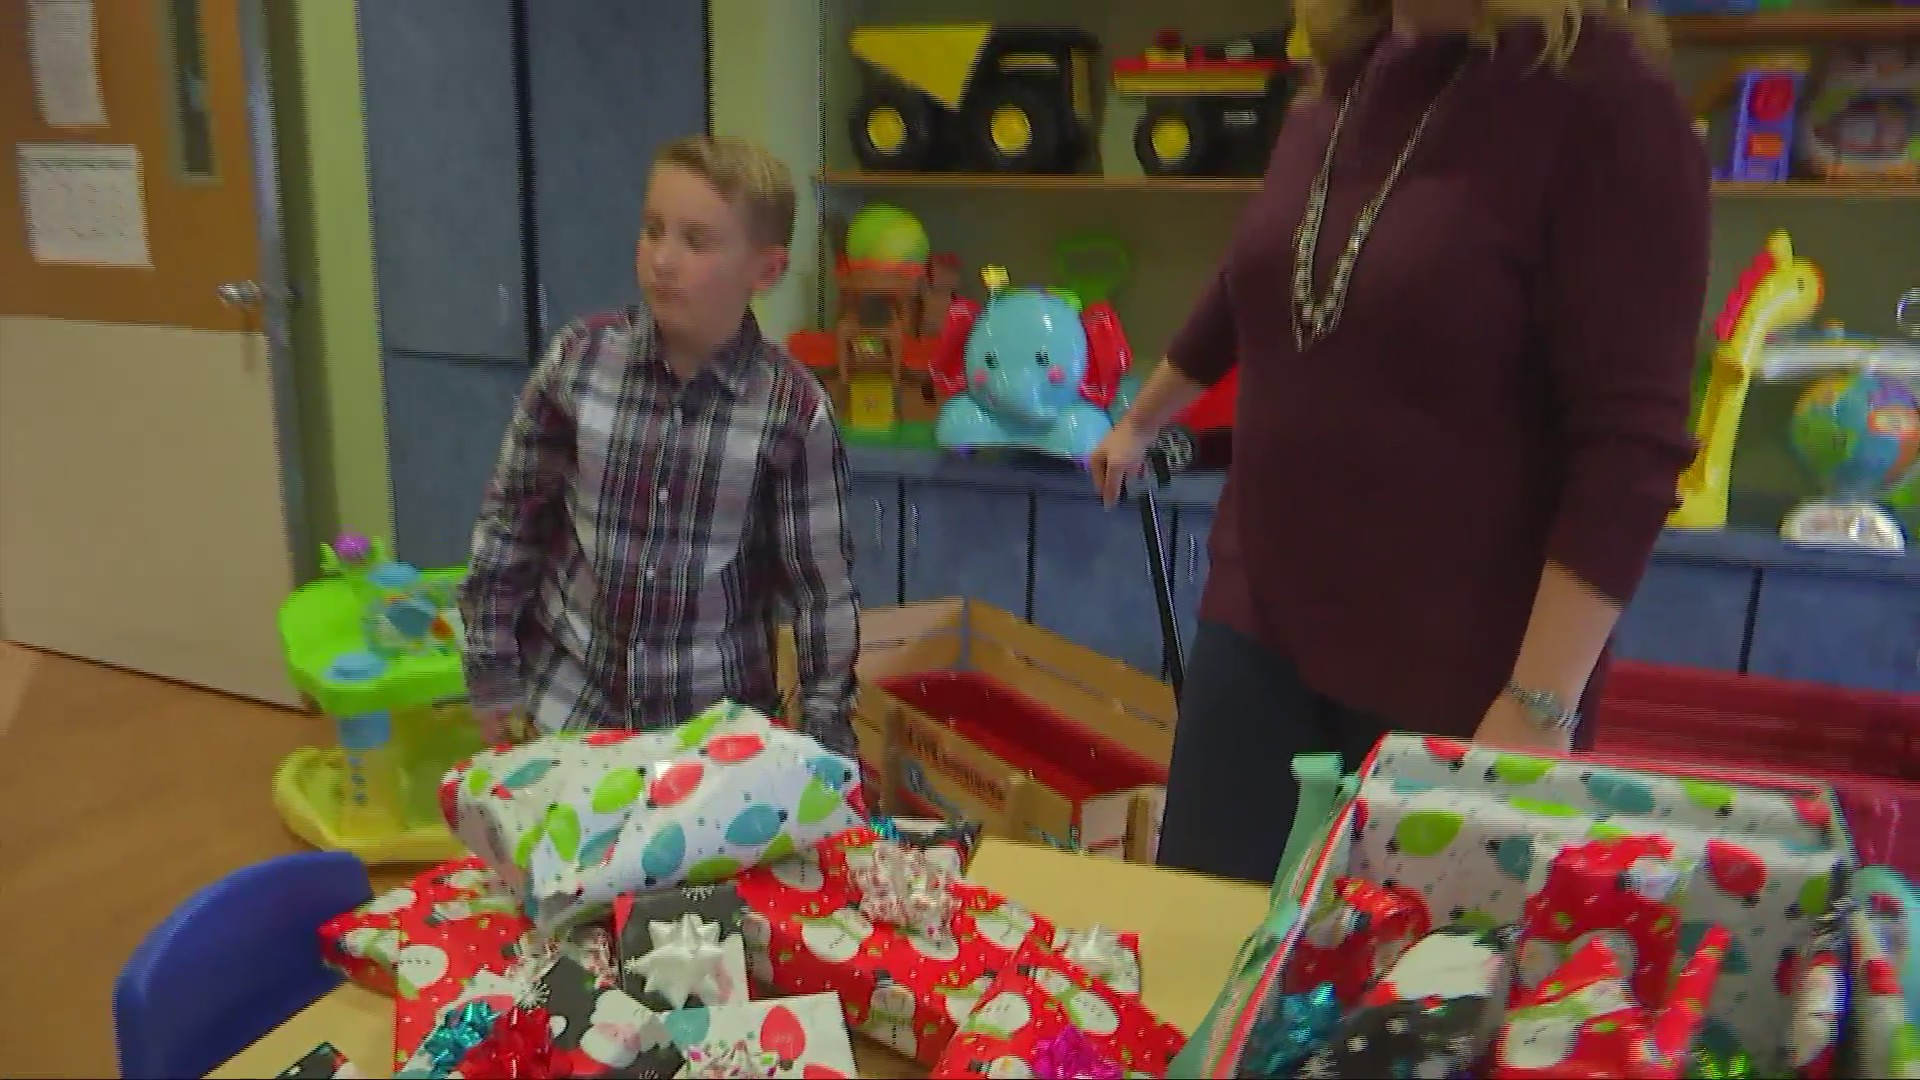 Local Boy Gives Back - One Dime at a Time